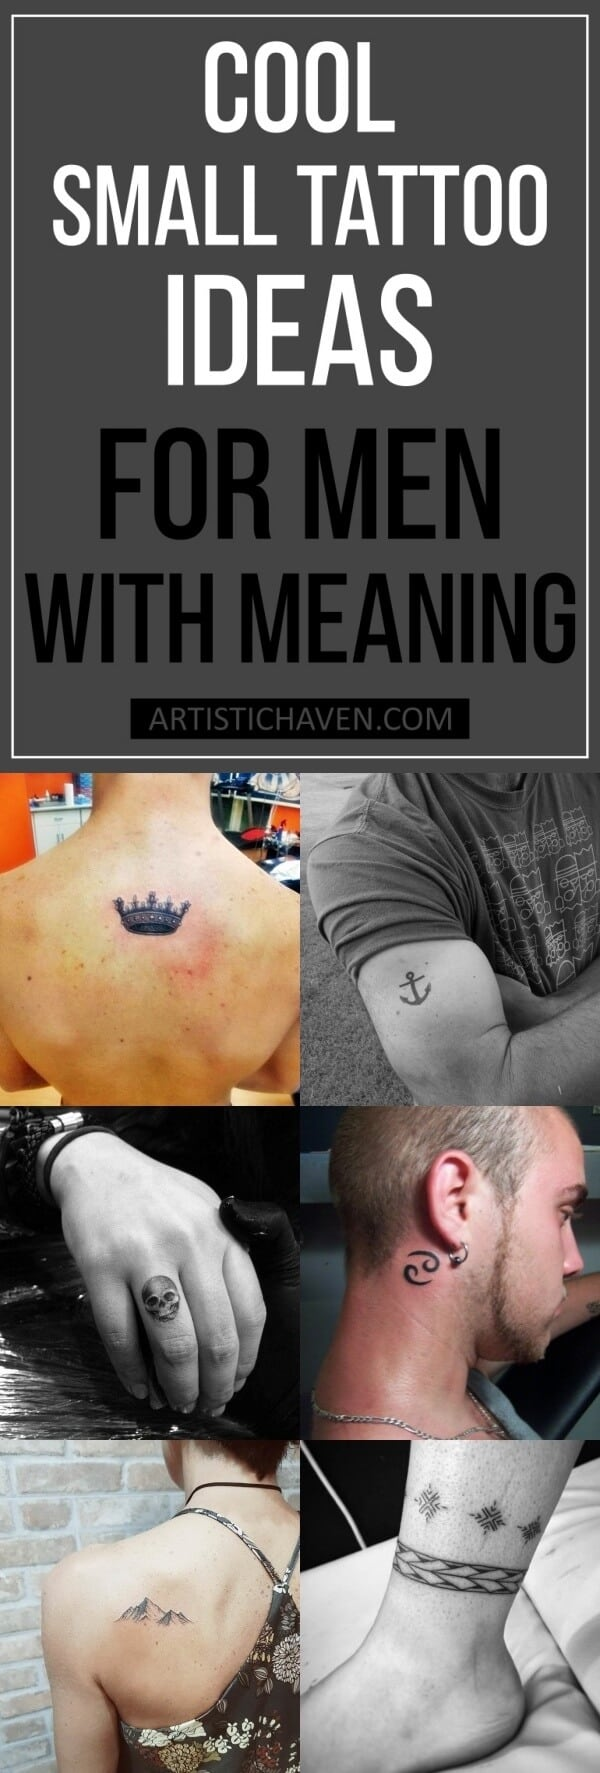 Cool Small Tattoo Ideas For Men With Meaning